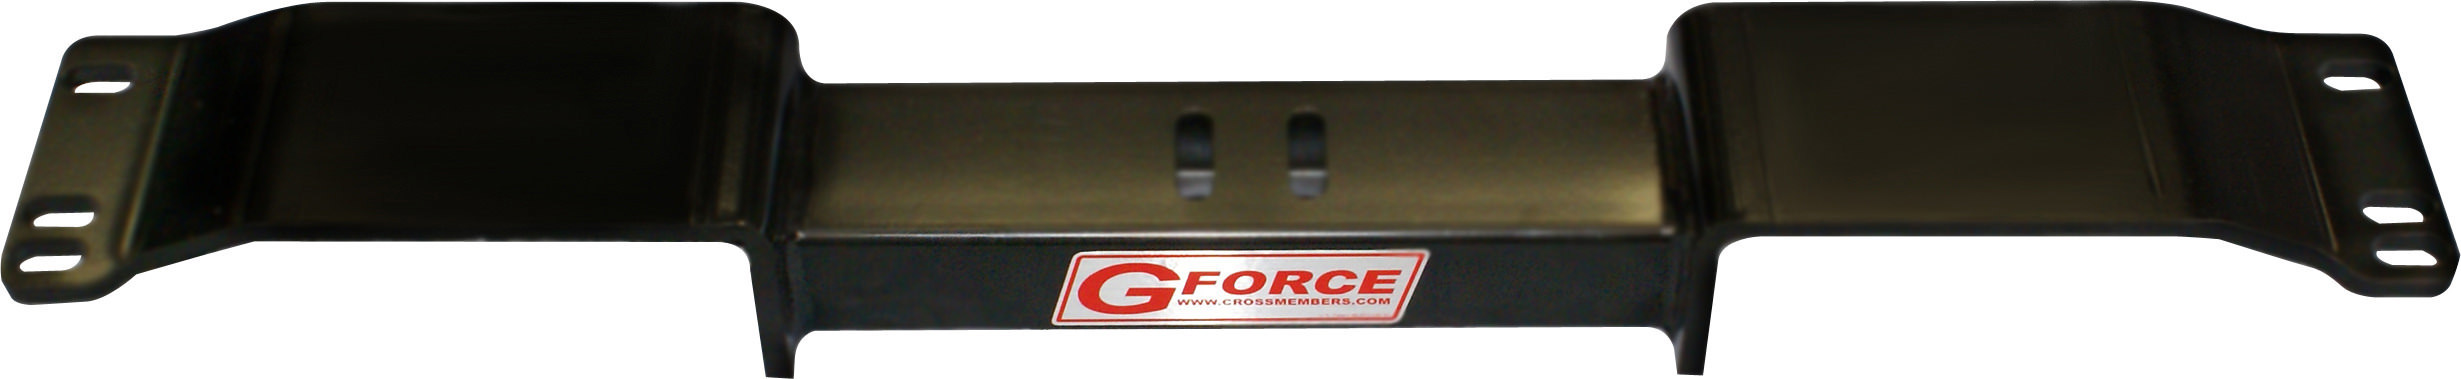 G Force Crossmembers RCF1-350 Transmission Crossmember, Bolt-On, Steel, Black Powder Coat, TH350 / Muncie / Powerglide / T-10 / Saginaw / TH200 Transmission, GM F-Body 1967-69, Each